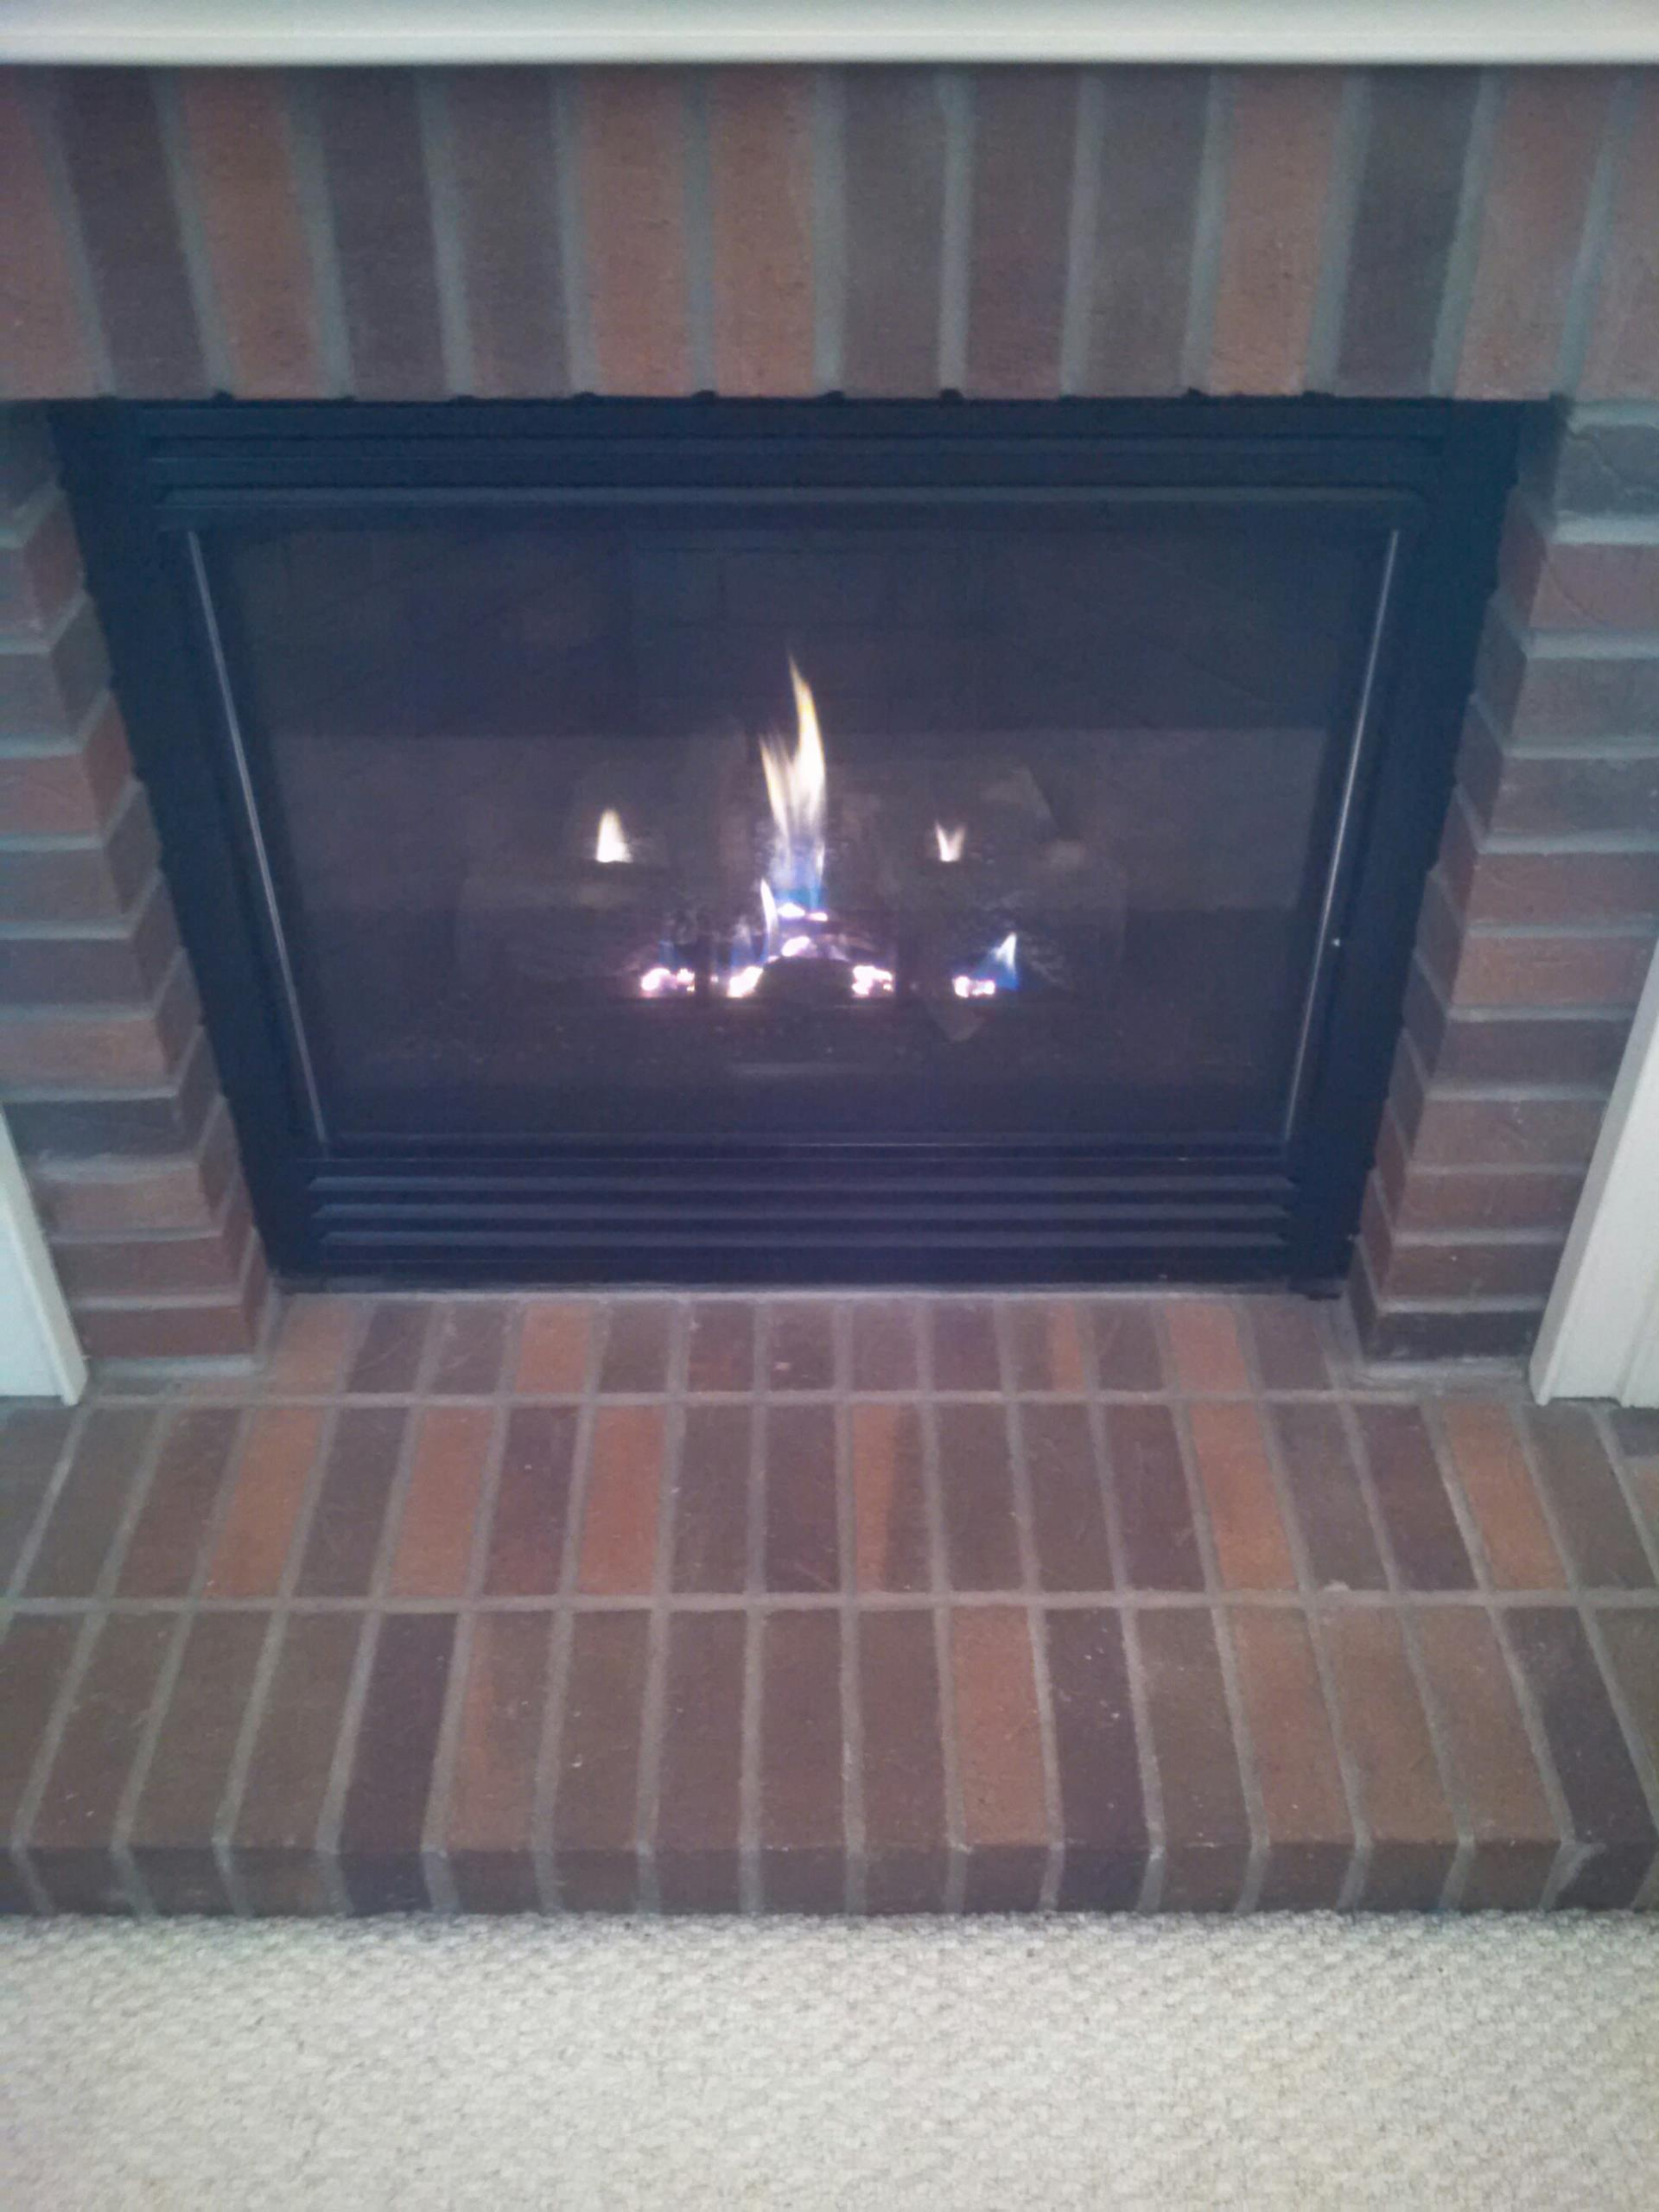 Gambrills, MD - Gas fireplace insert & gas logs installation repair service call in Gambrills MD.